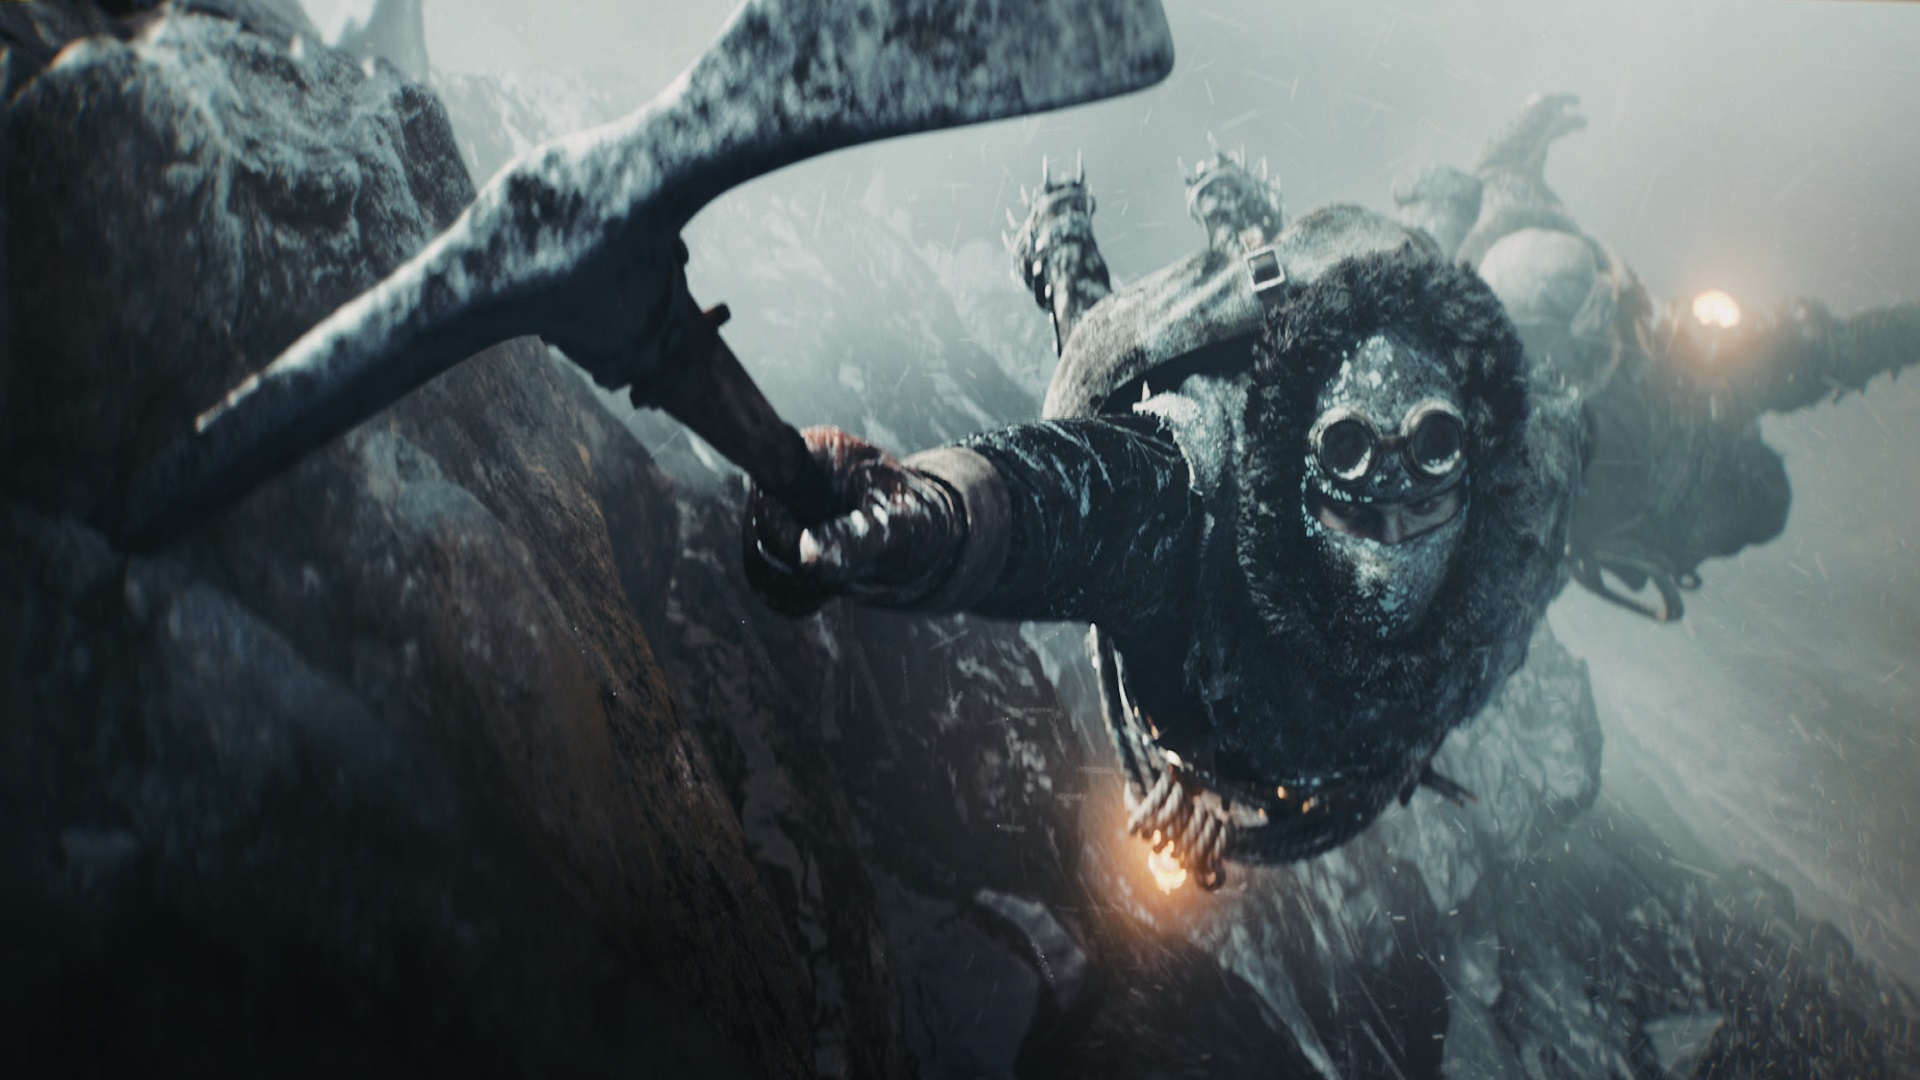 Frostpunk 2018 Game Wallpapers: Download Frostpunk HD Wallpapers